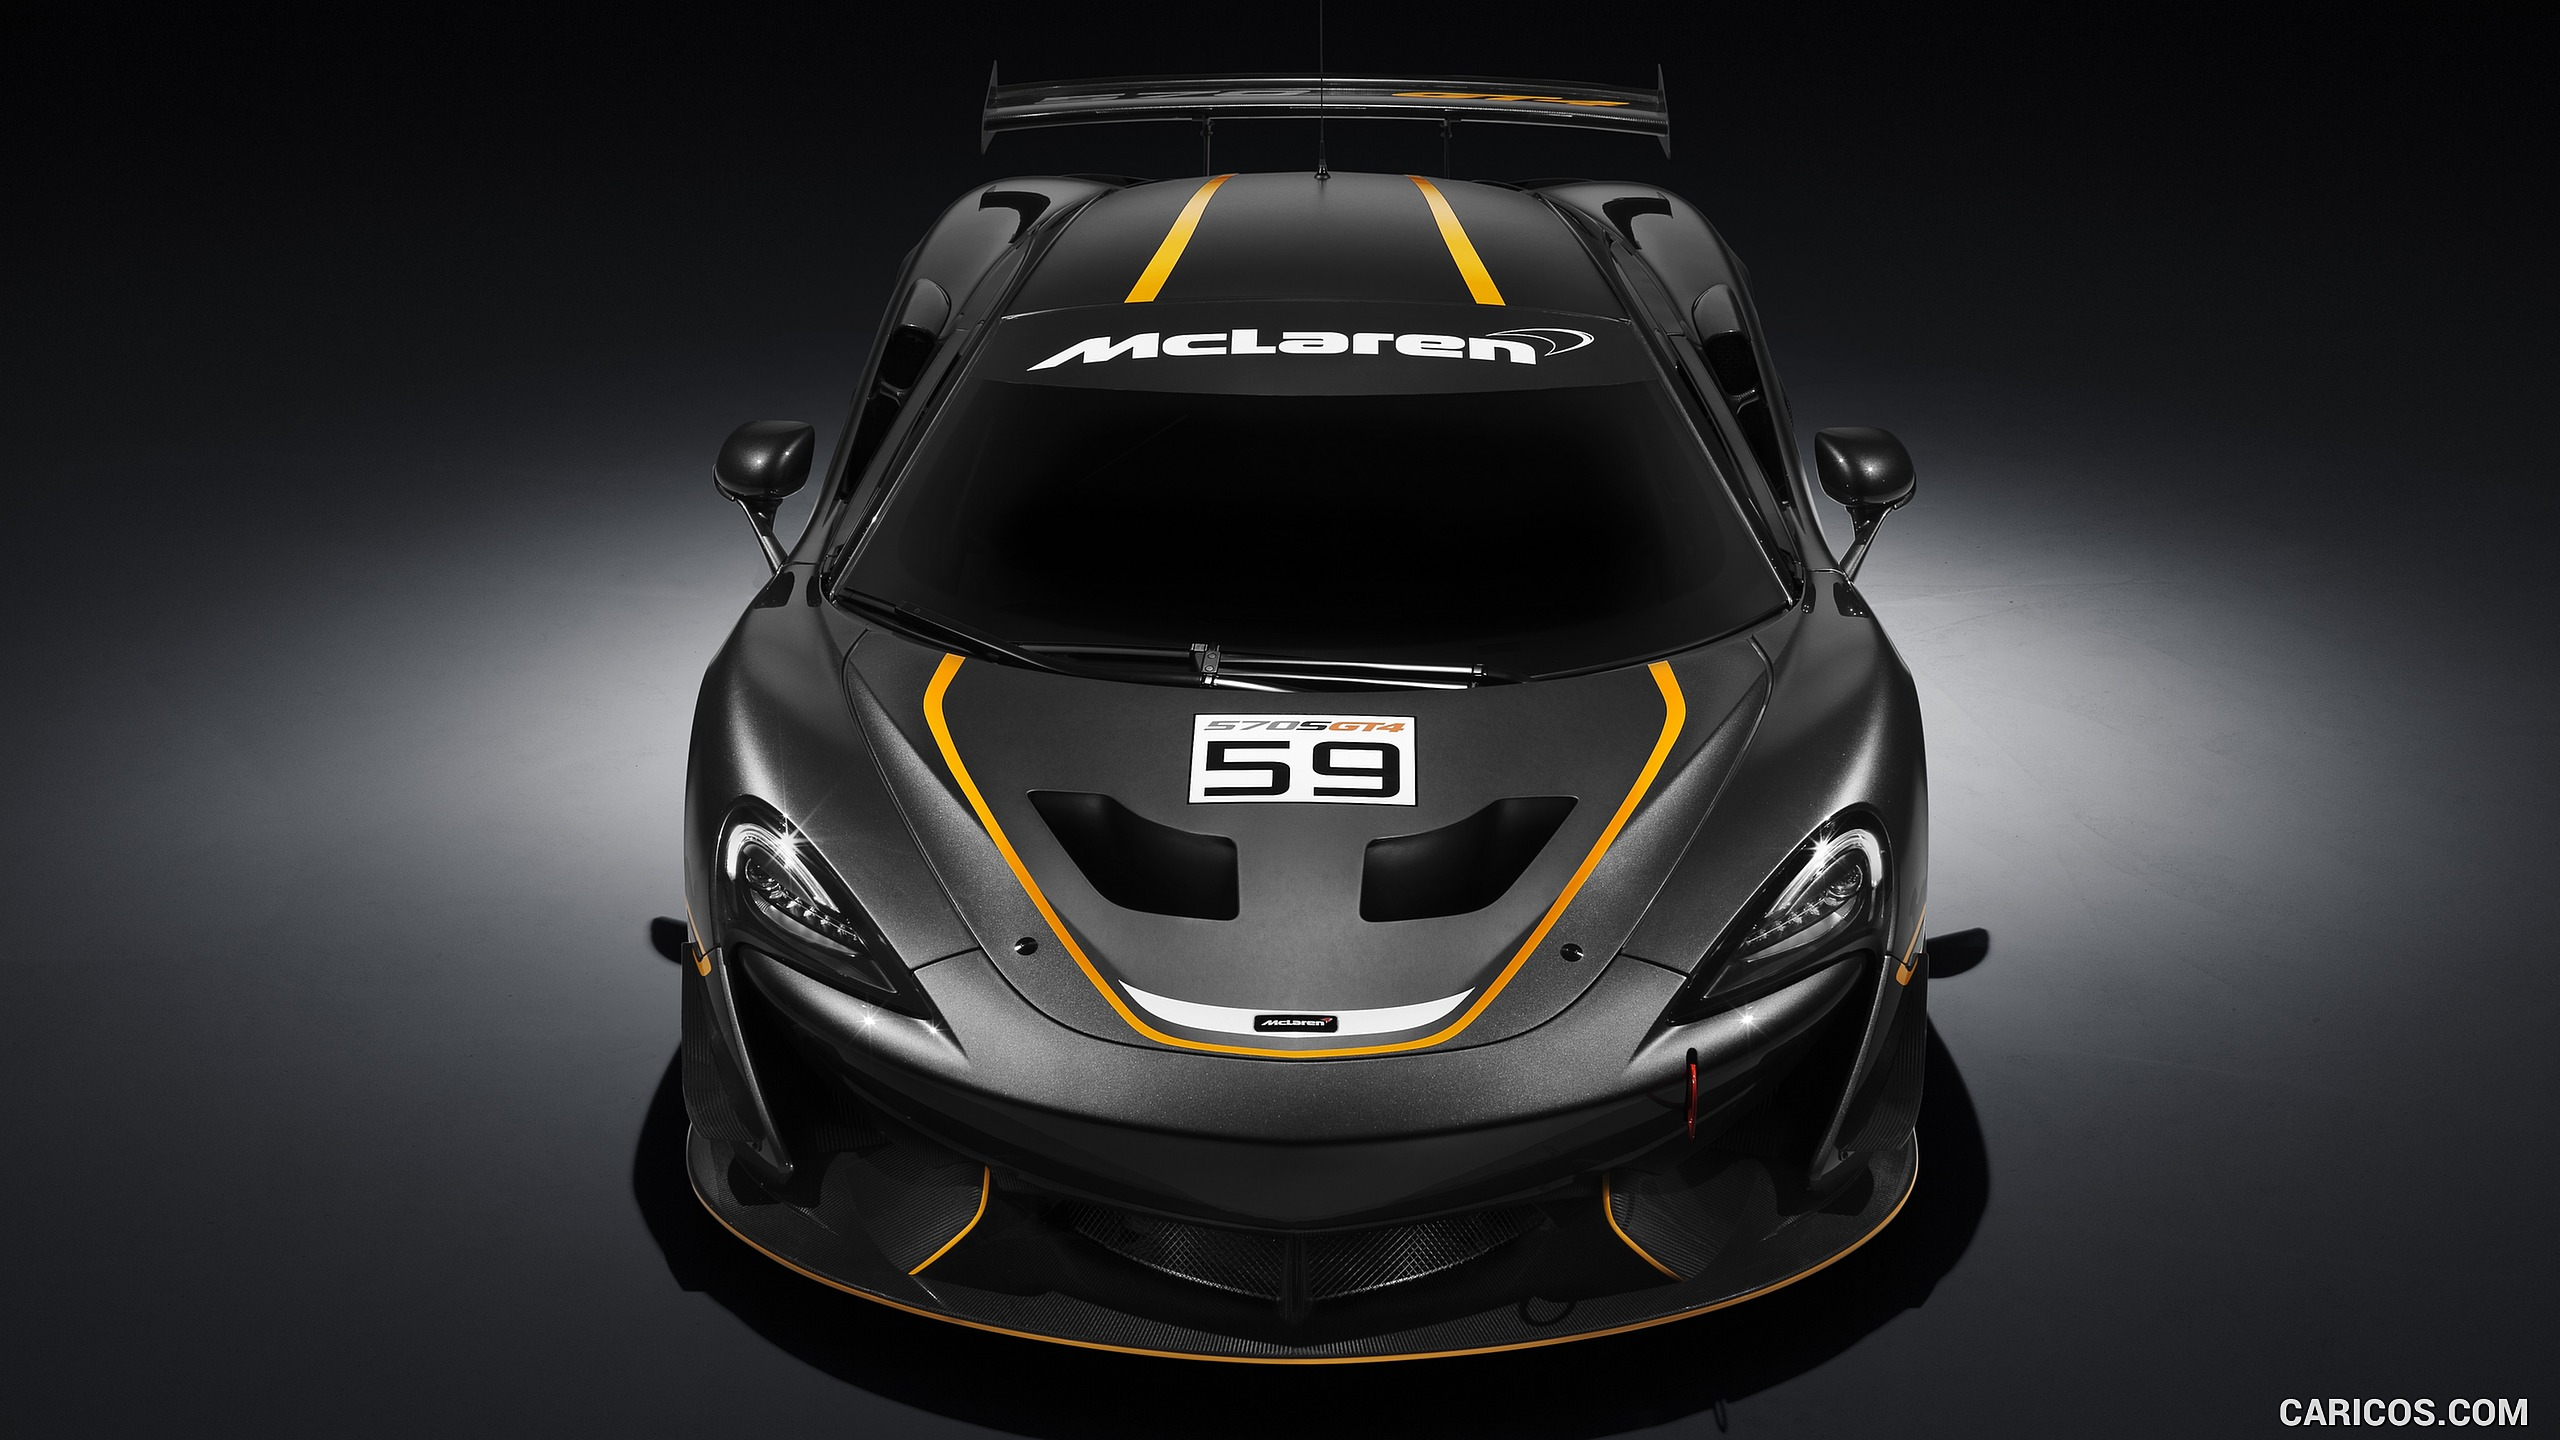 2560x1440 - McLaren 570S GT4 Wallpapers 6